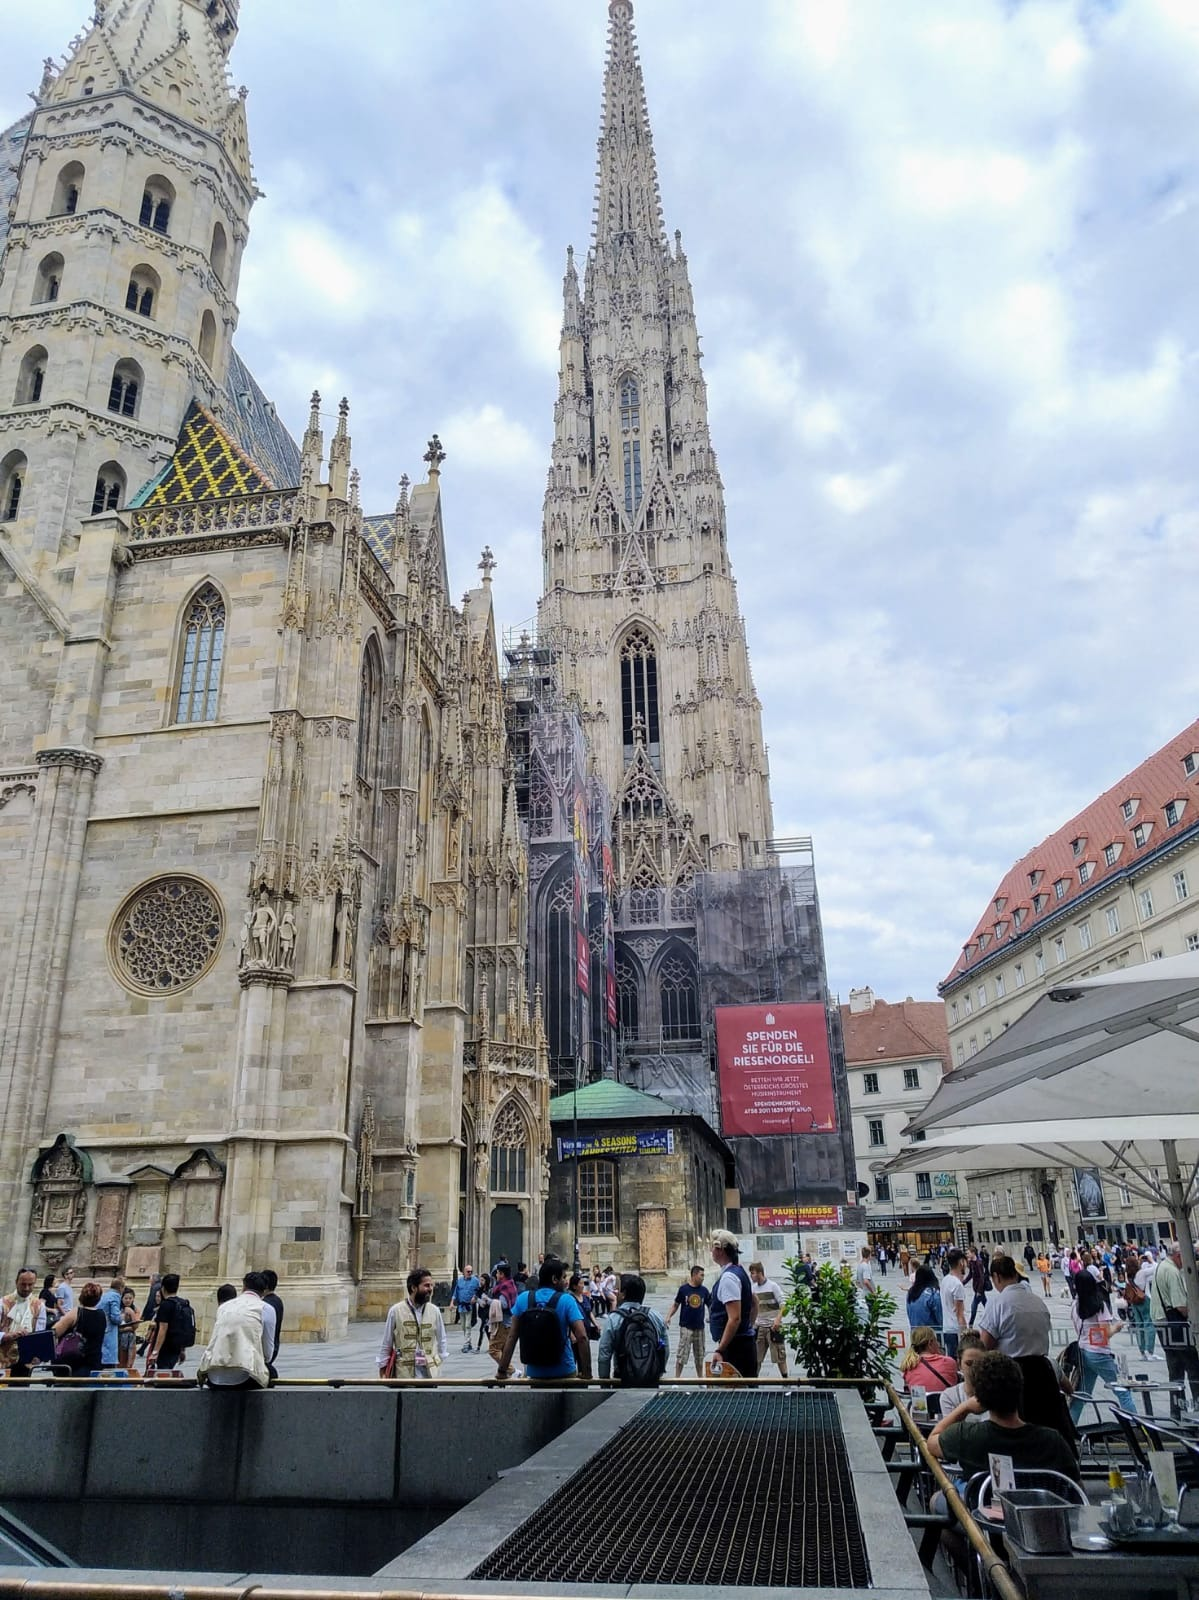 austria-cattedrale-vienna-tryitaly-1587663814.jpg